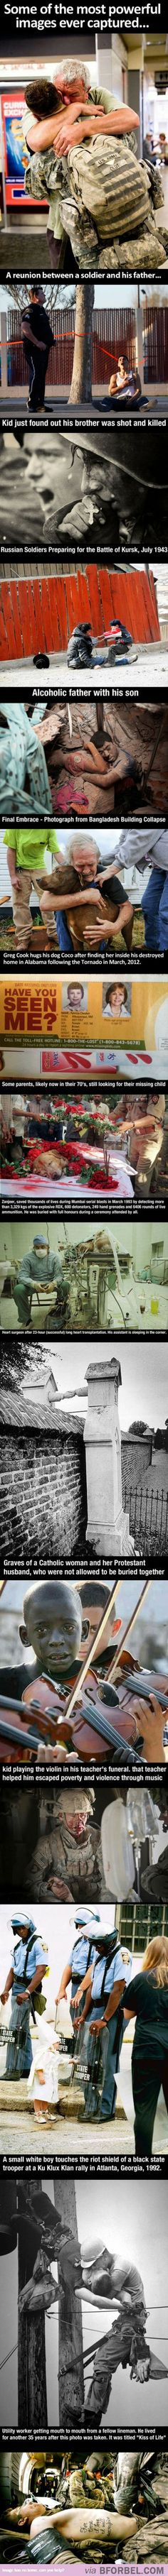 15 Of The Most Powerful Images Ever Captured…